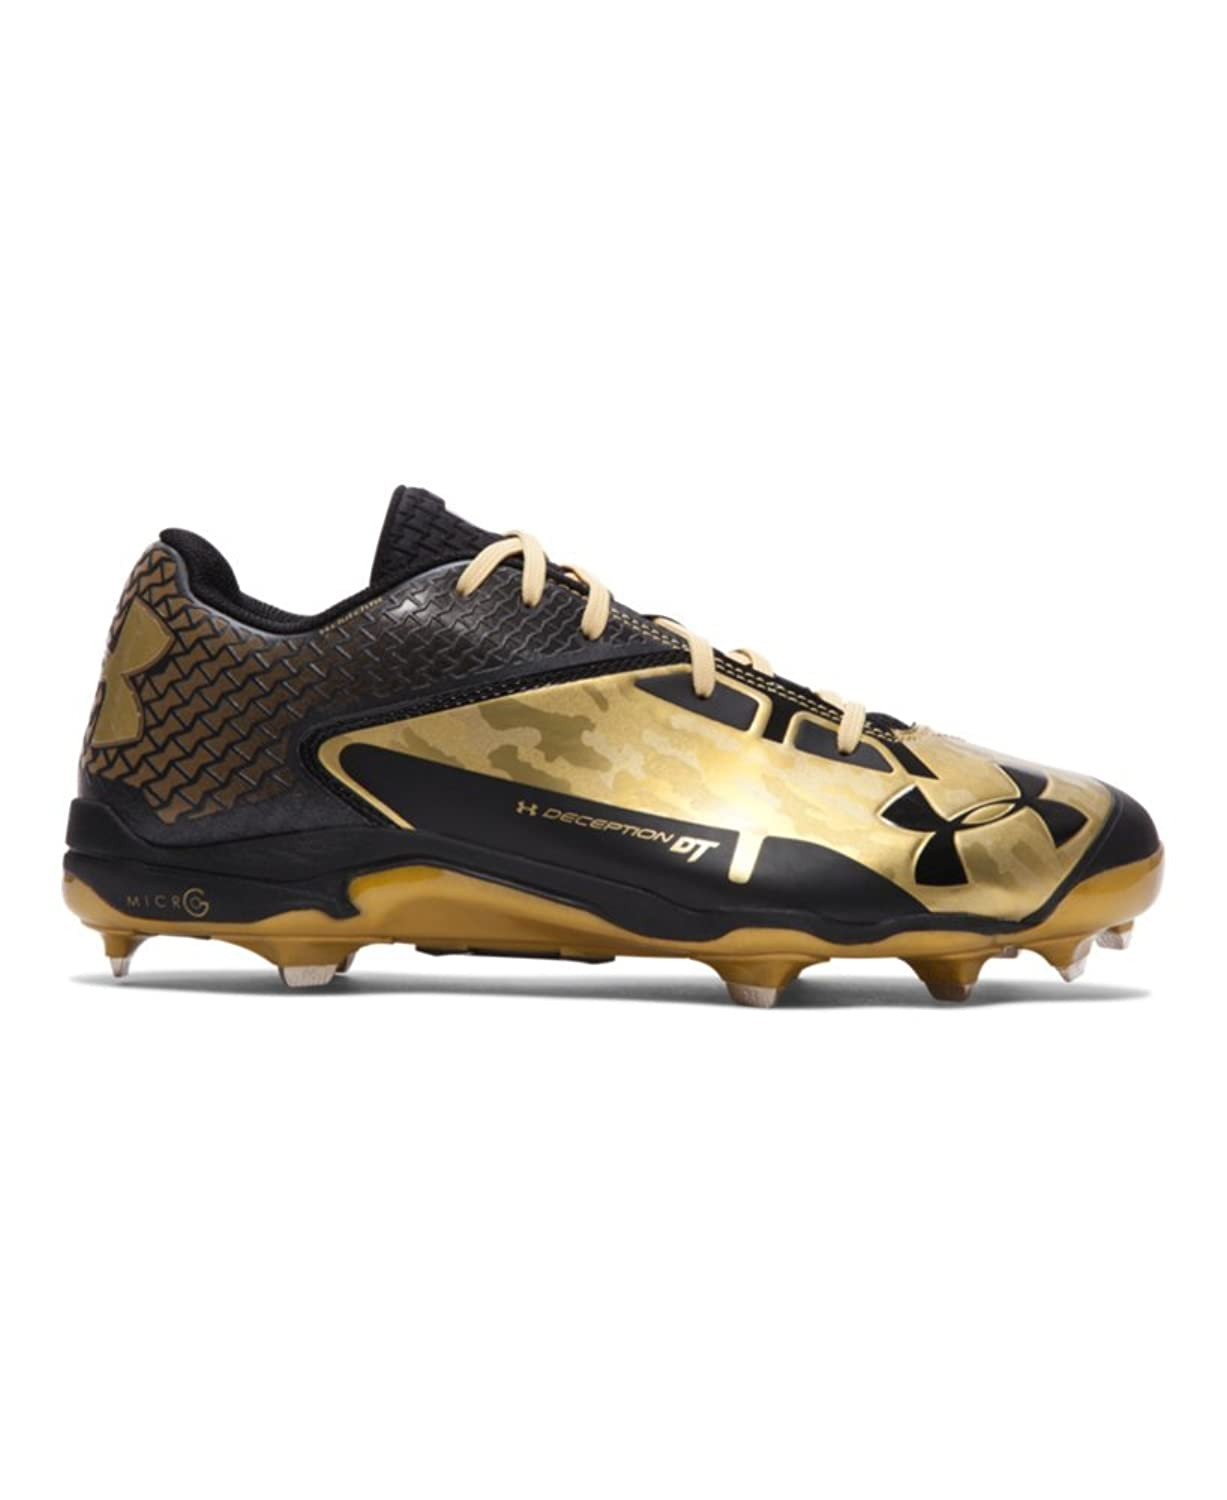 d76c7935cbbe Under Armour Men's UA Deception Low DiamondTips Baseball Cleats — All-Star  Game Edition 7.5